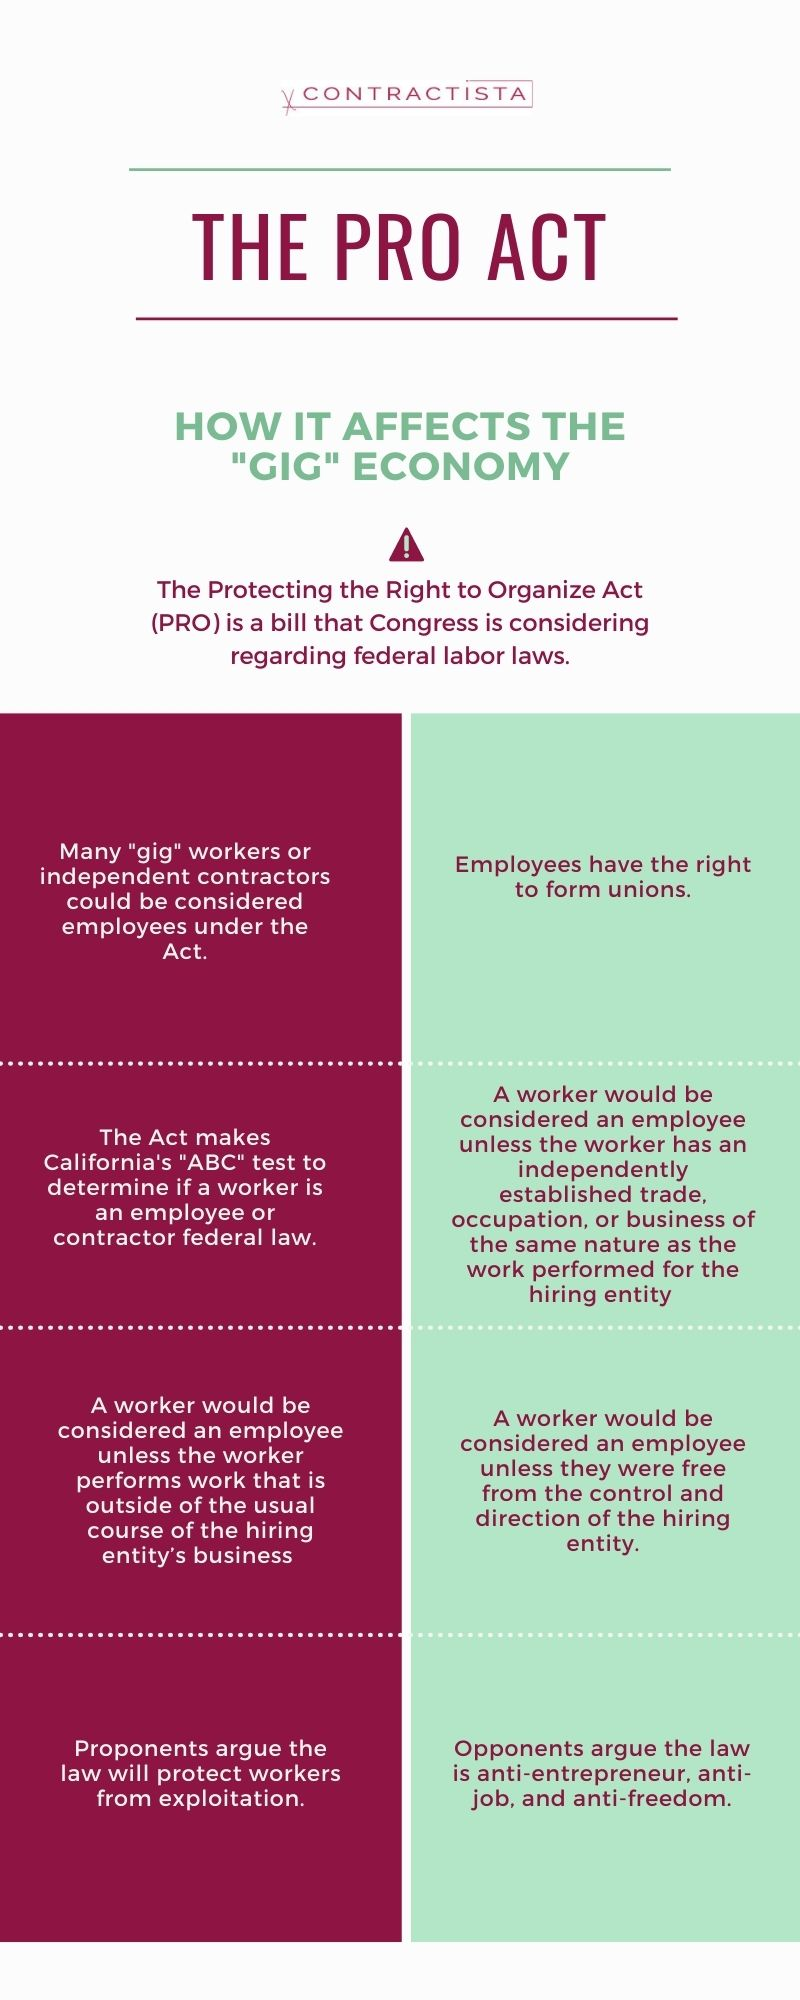 PRO Act affects independent contractors